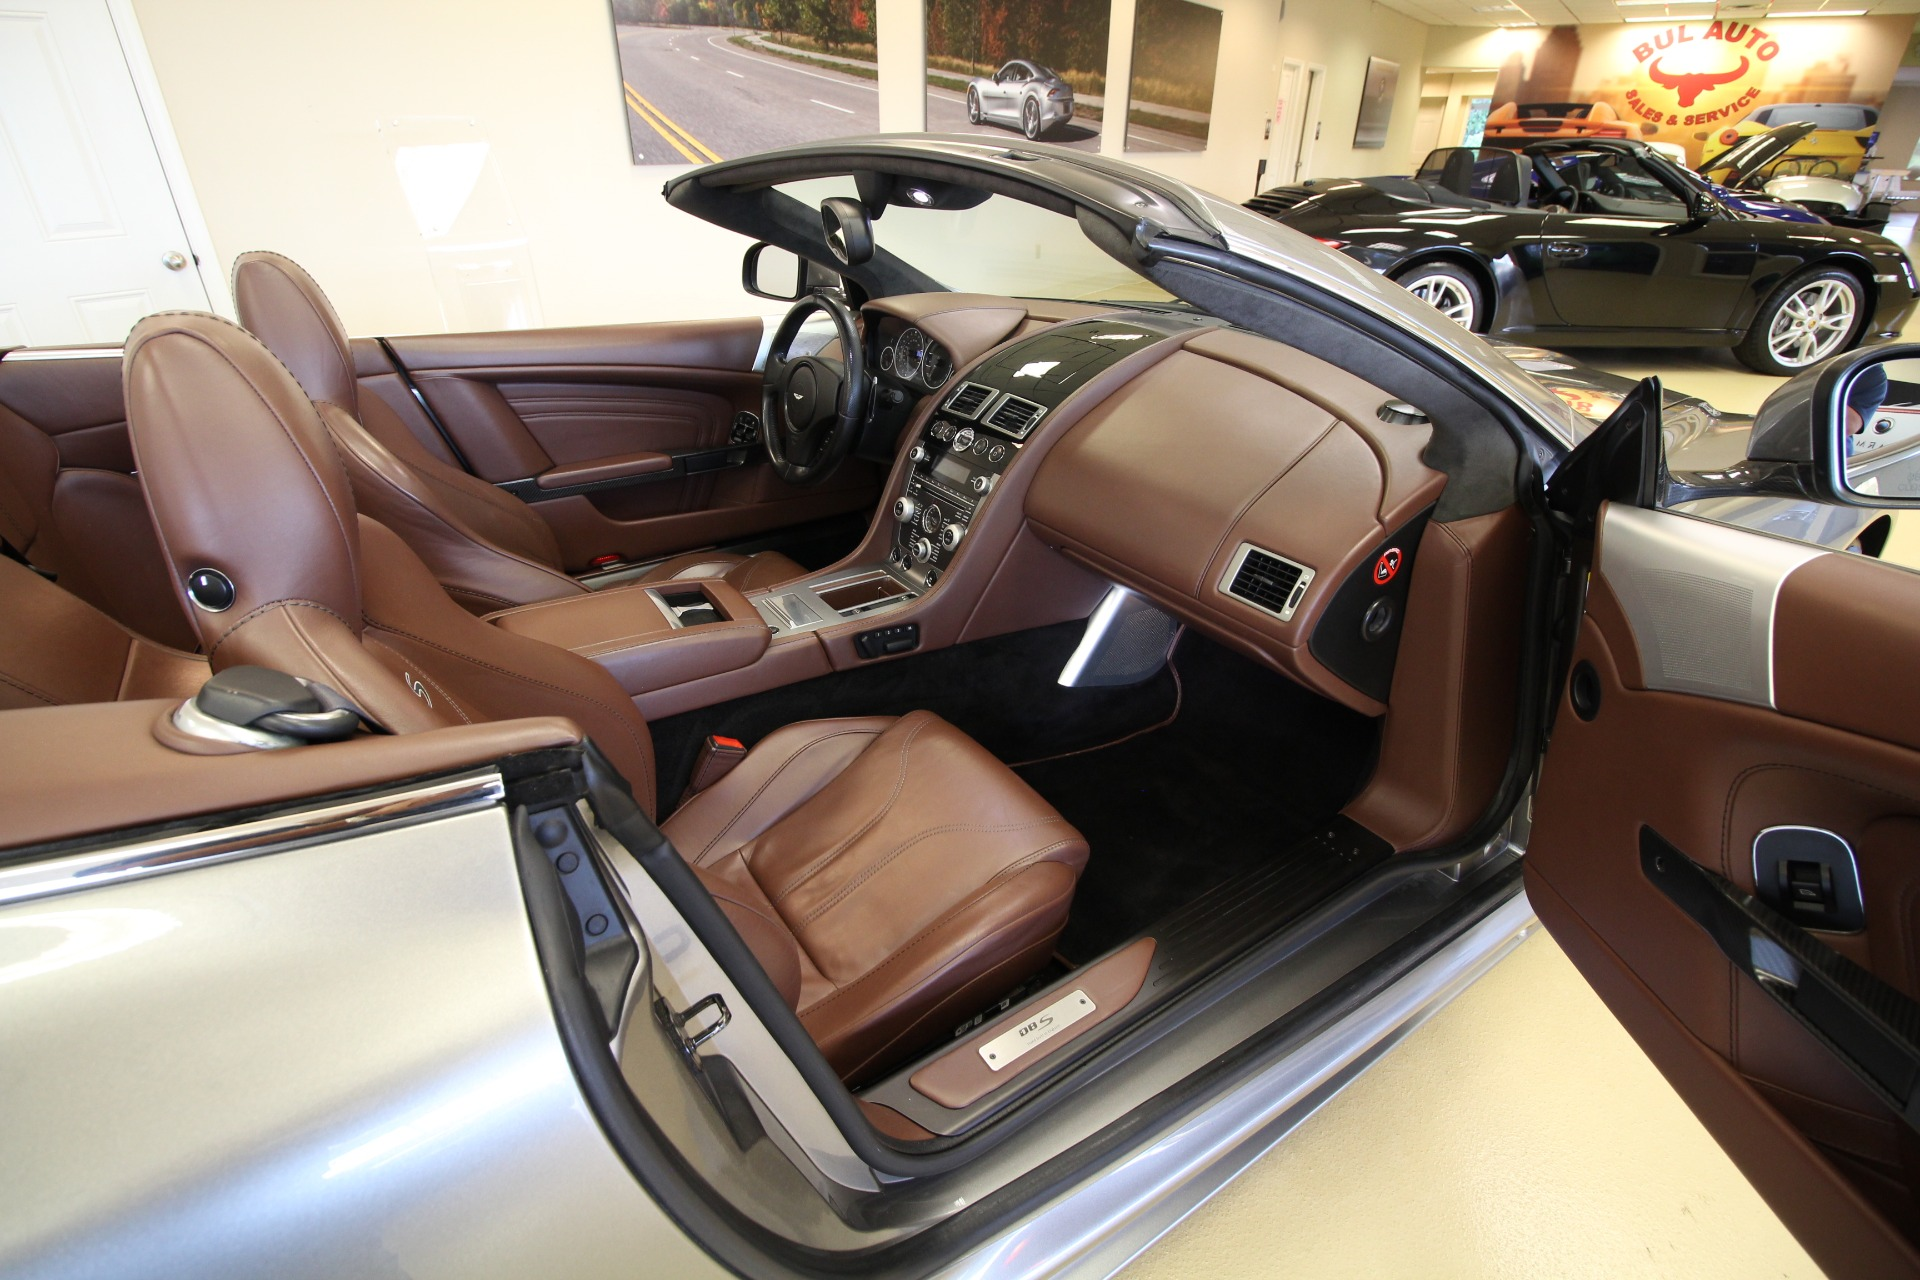 Used 2010 Aston Martin DBS Volante Convertible VERY CLEAN STUNNING CAR | Albany, NY